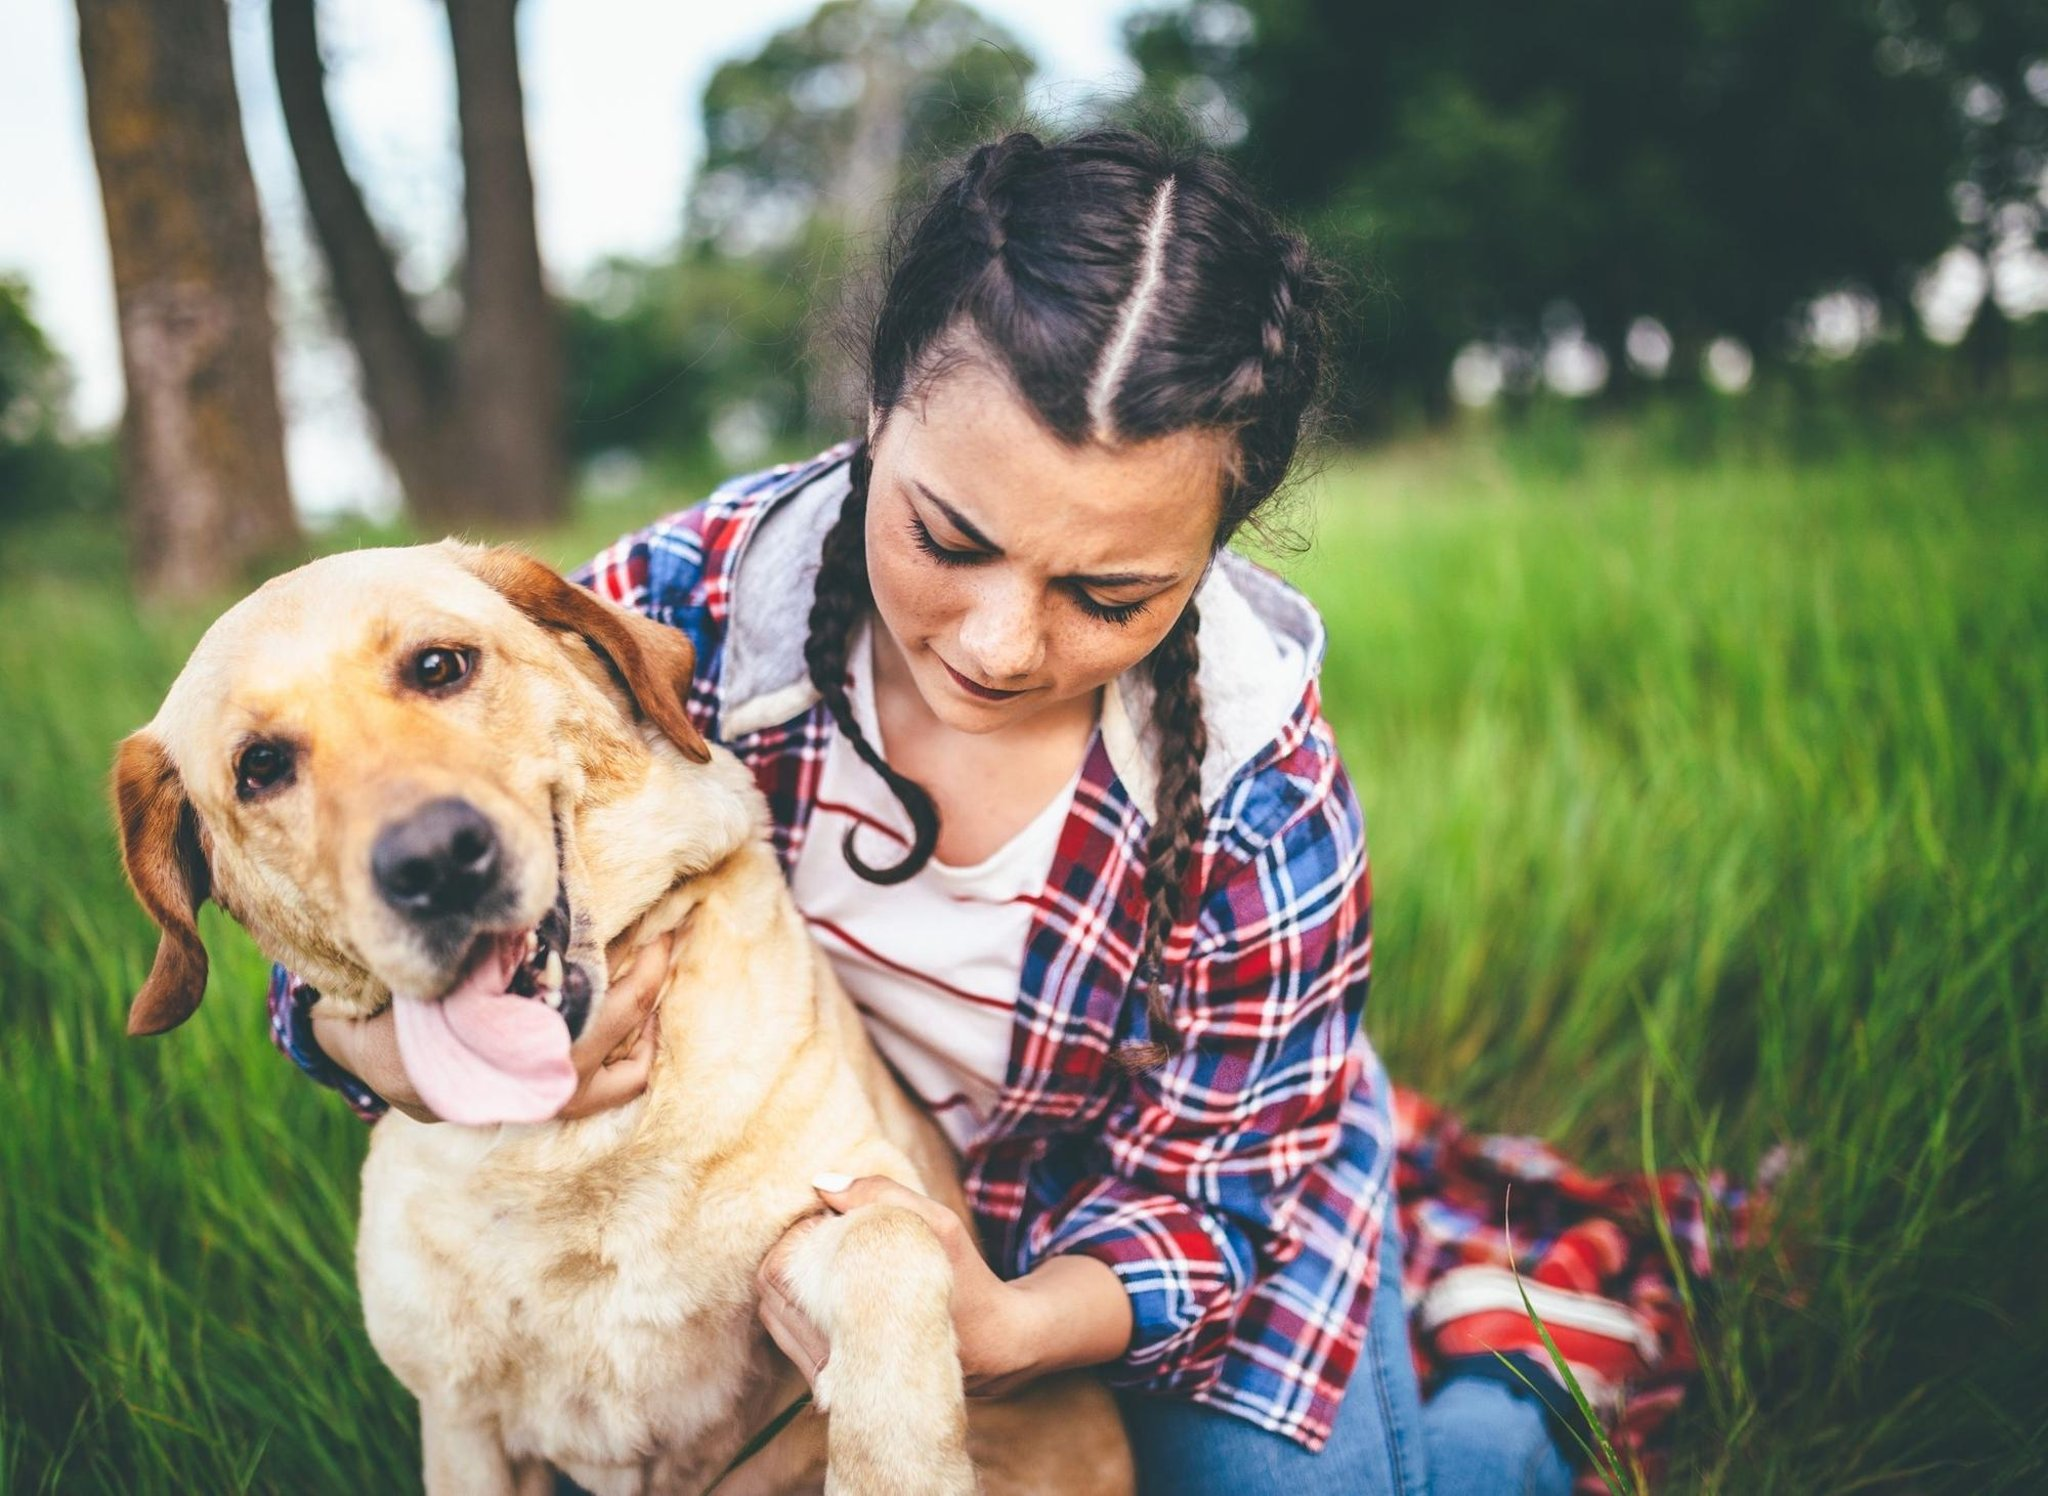 These are the 10 best dog breeds you should choose for a family with teenagers